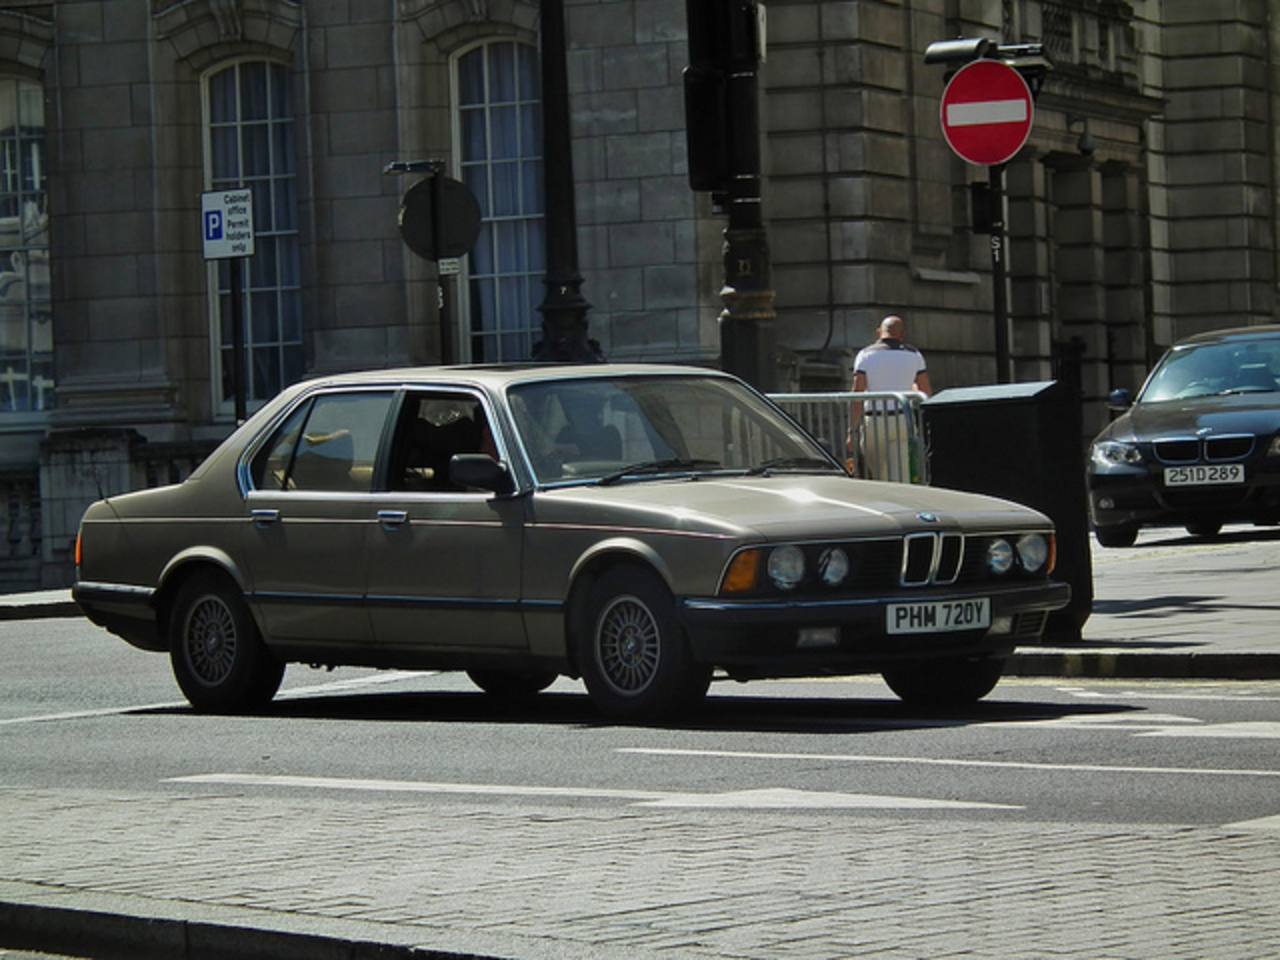 BMW 732i | Flickr - Photo Sharing!